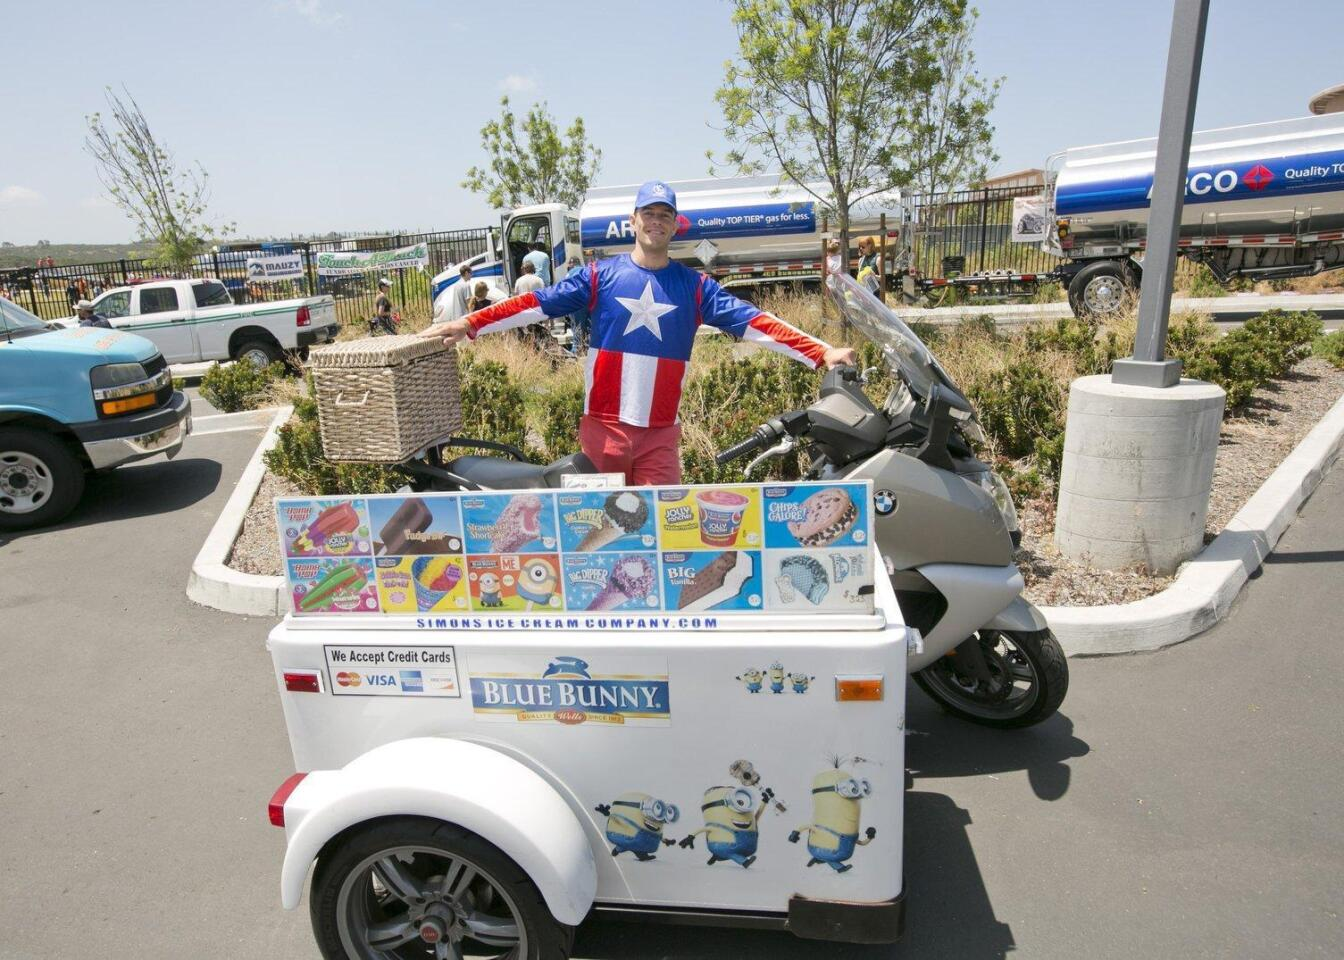 Simon Anguelov with his BMW motorcycle fitted with an ice cream side car